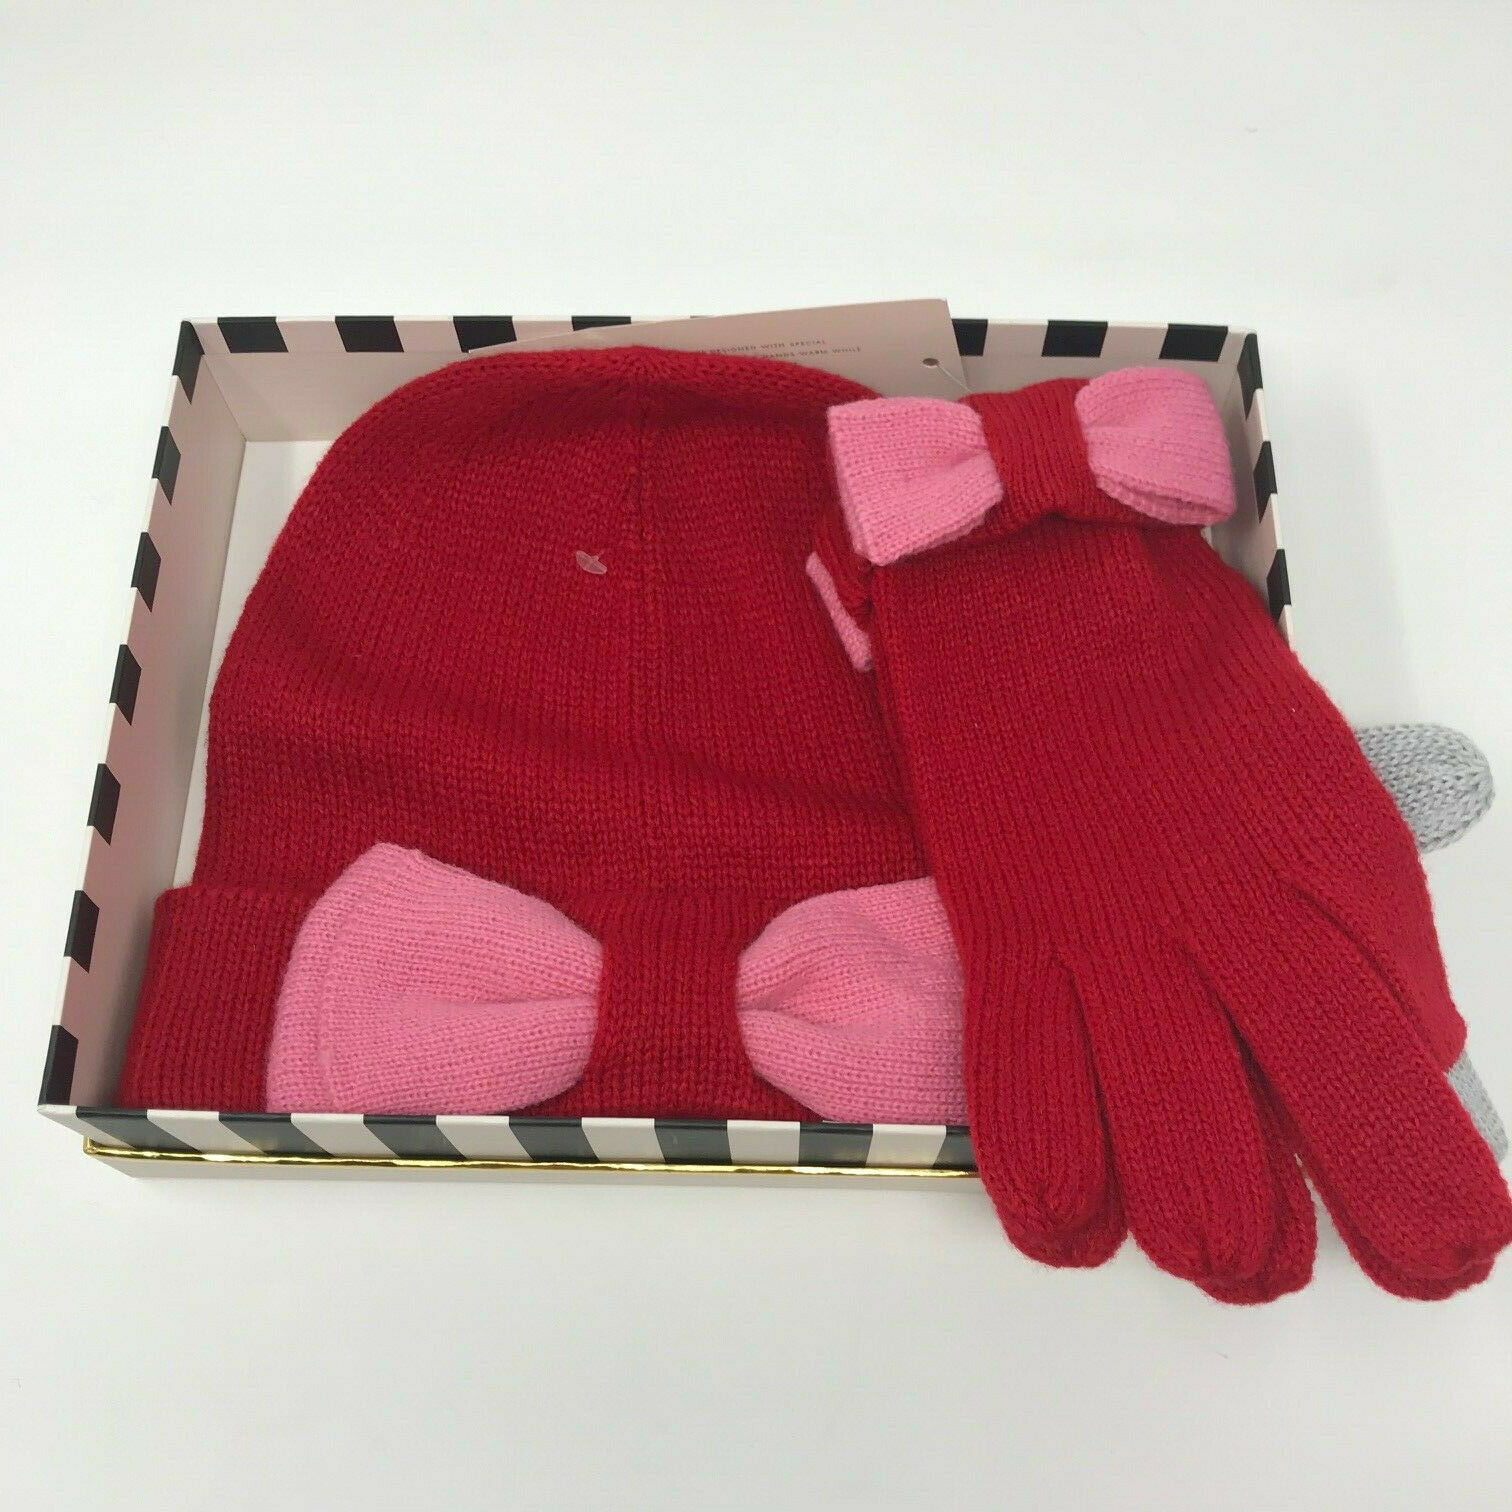 New NIB Kate Spade Hat and Glove Set Red Pink Bow Tech Friendly Holiday Winter